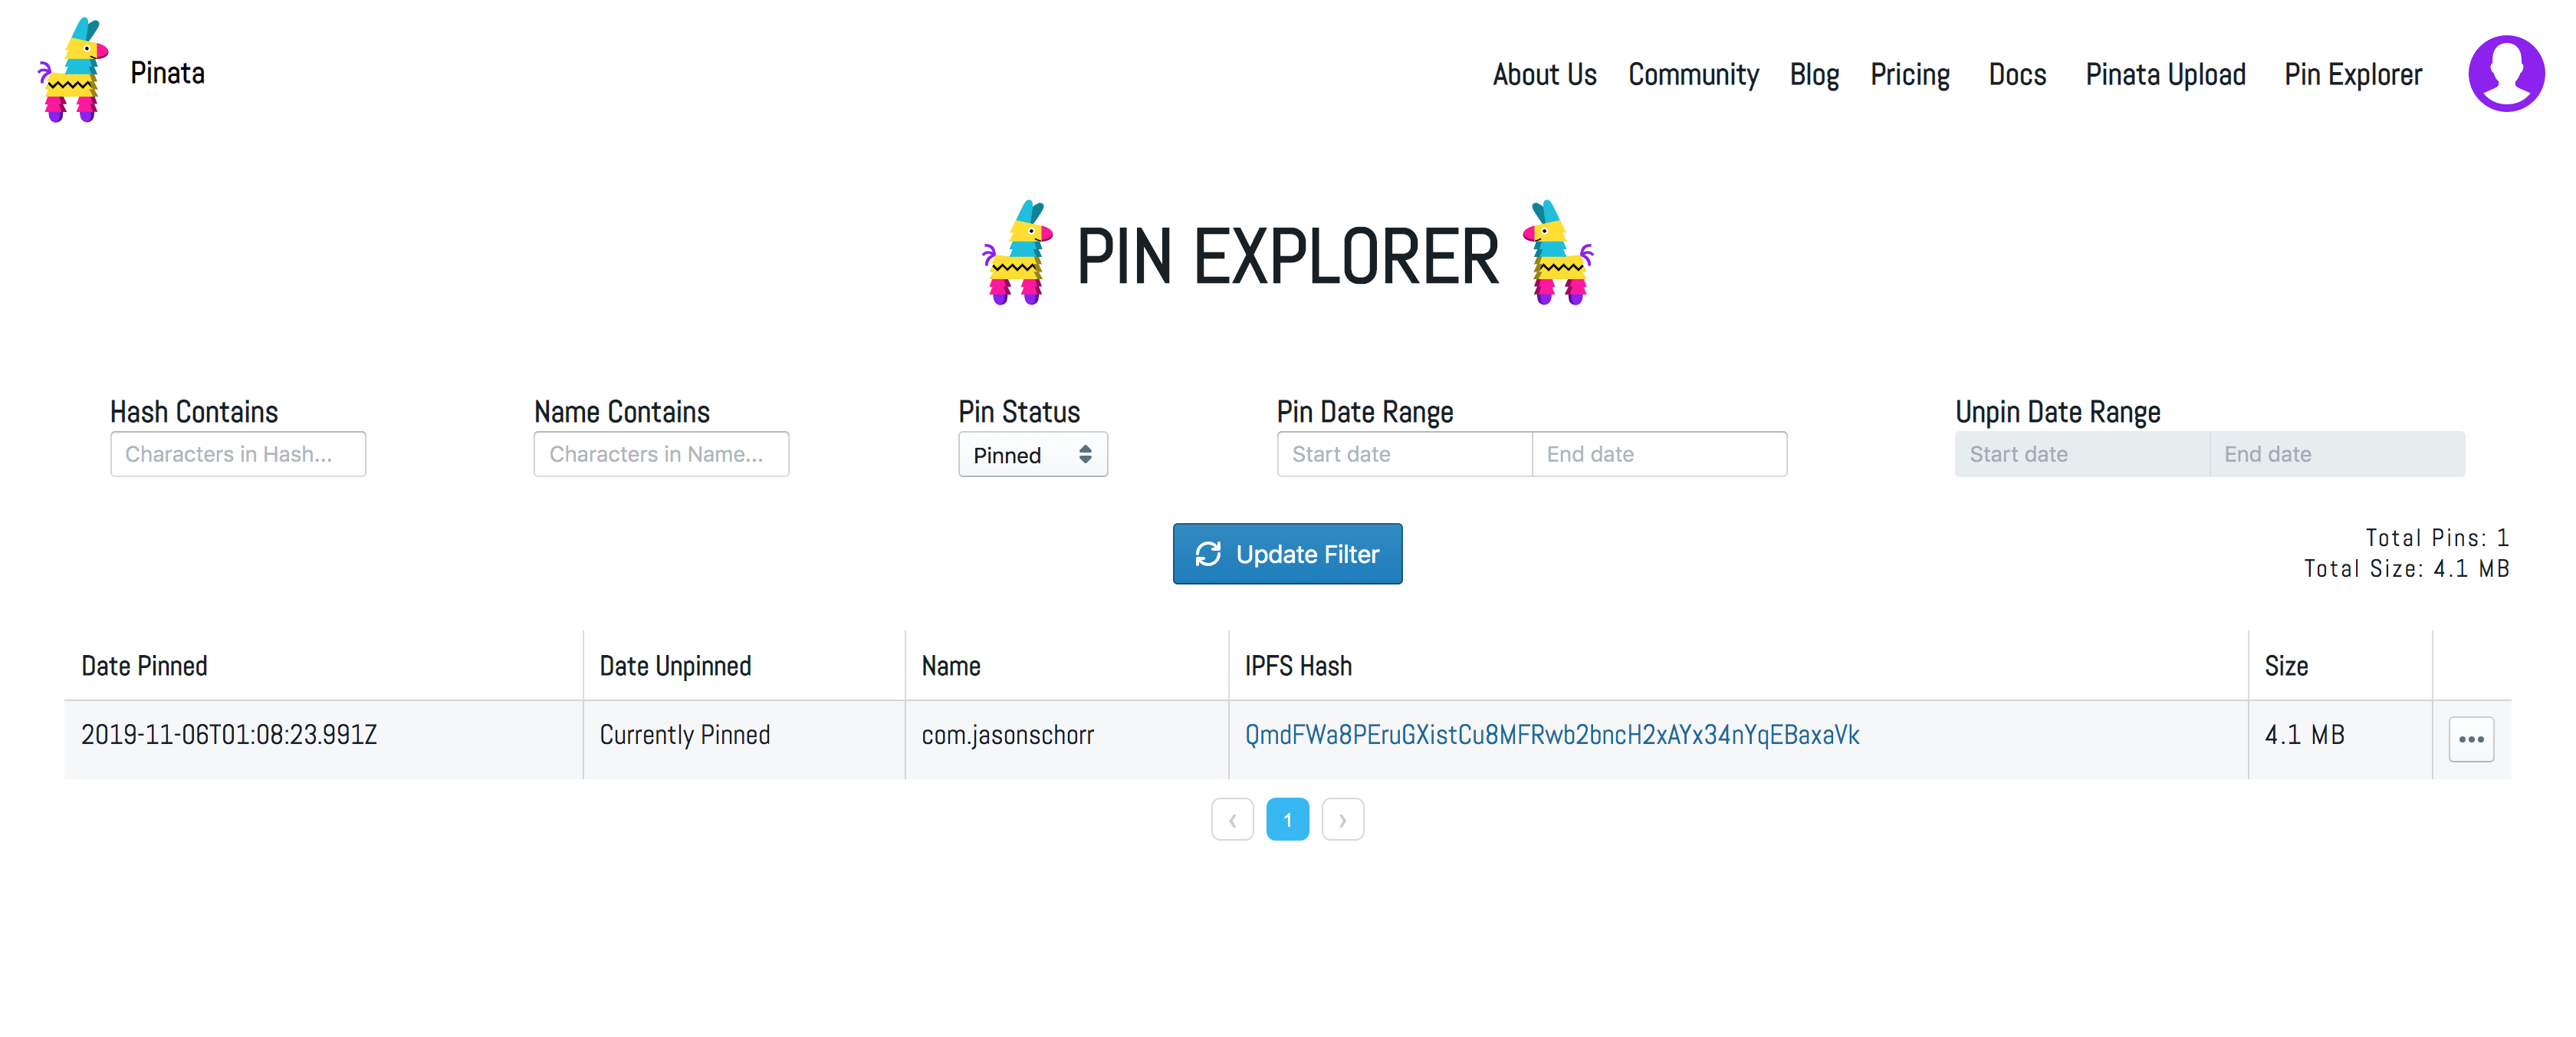 pinata.cloud pins interface